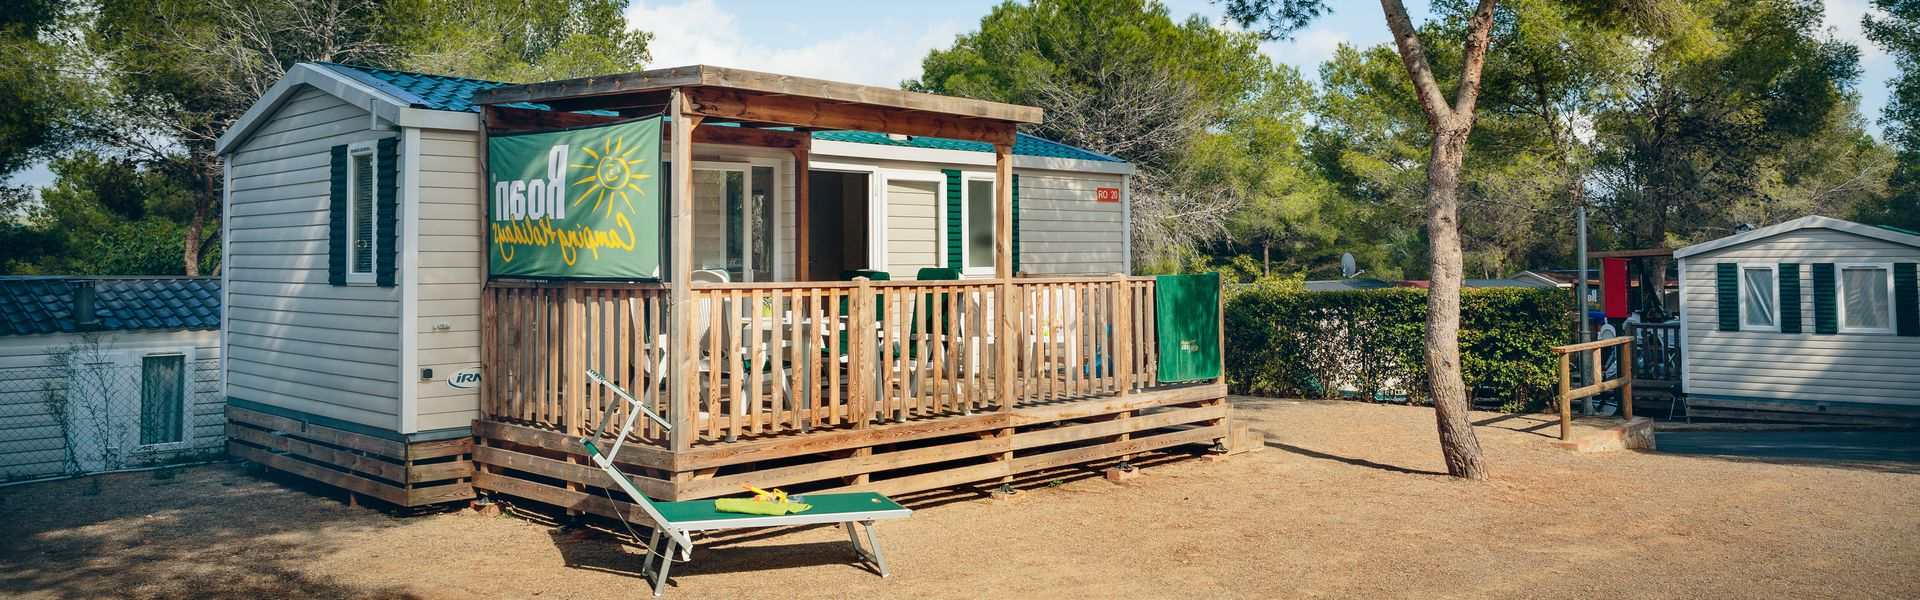 Last-minute deals on campsites in Spain